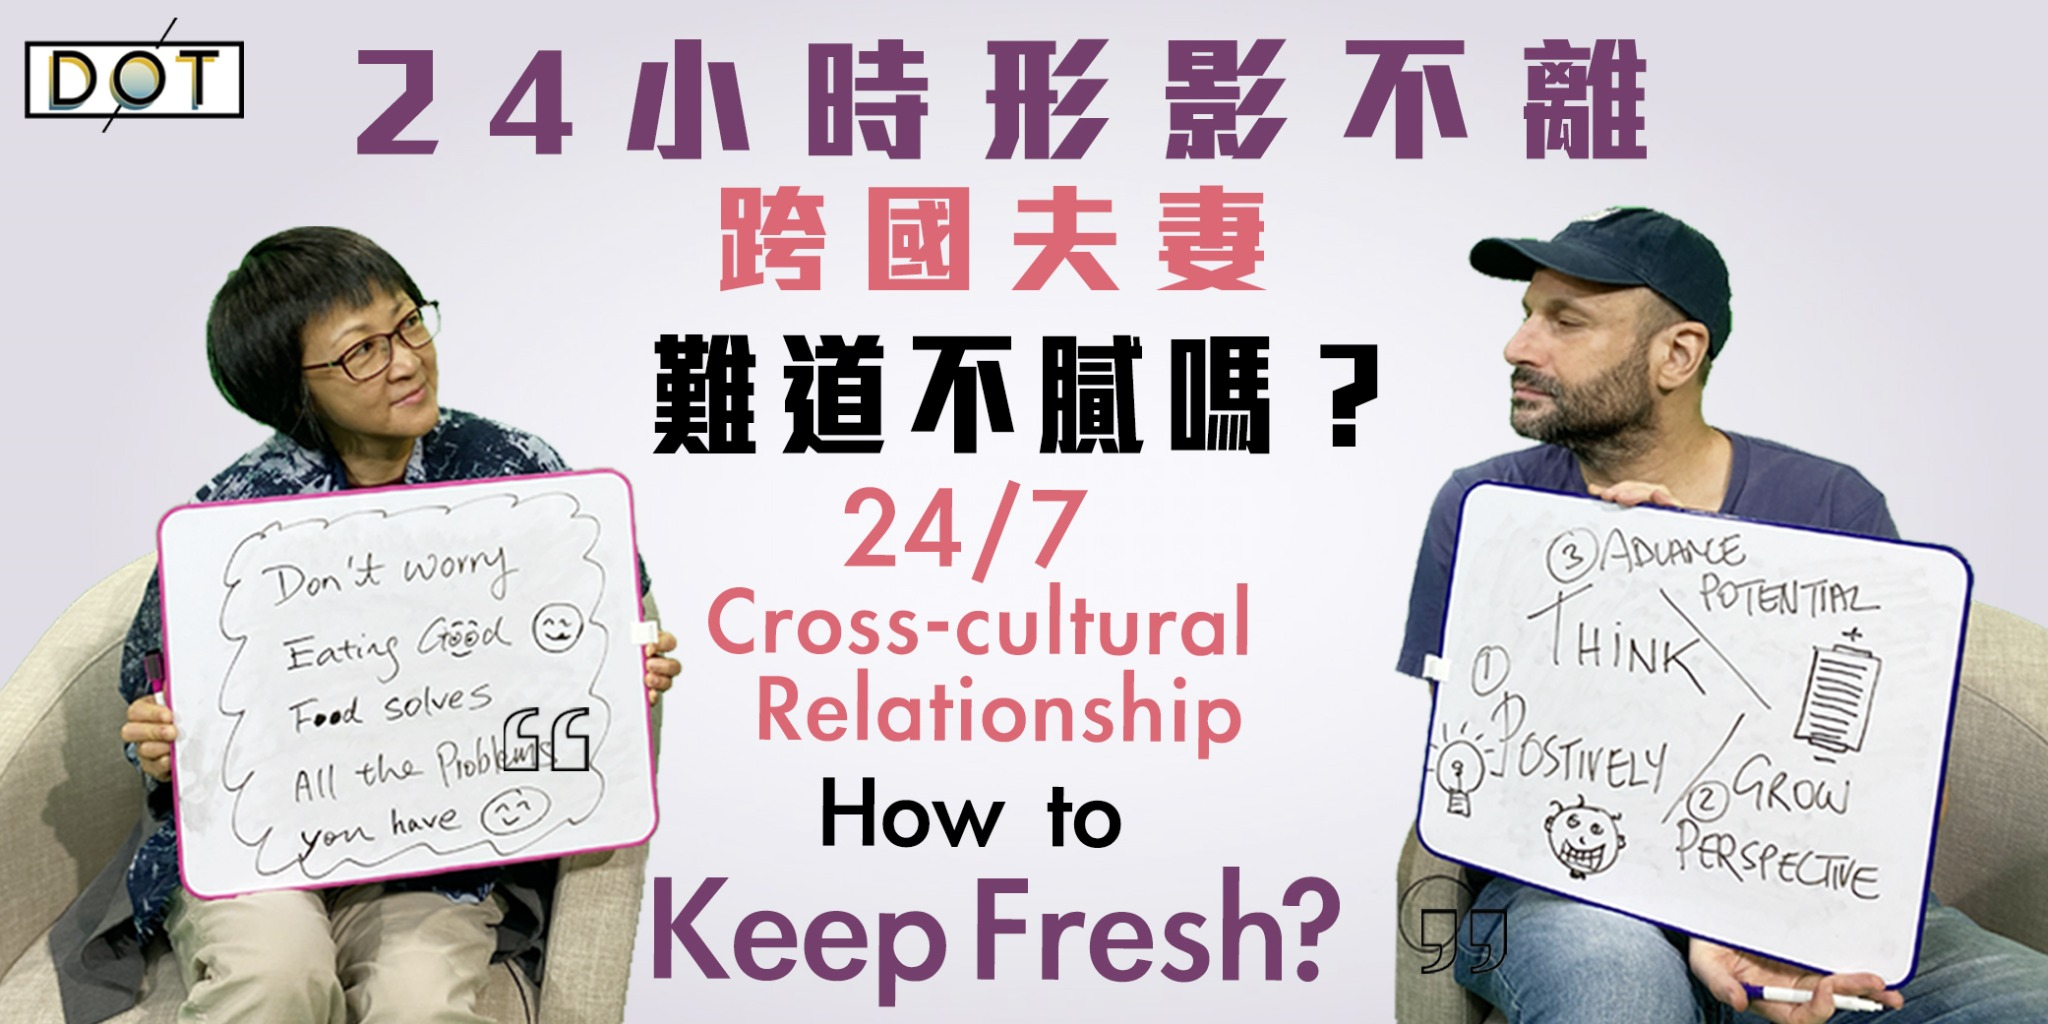 Be My Guest 22 Questions | 24/7 cross-cultural relationship: How to keep fresh?